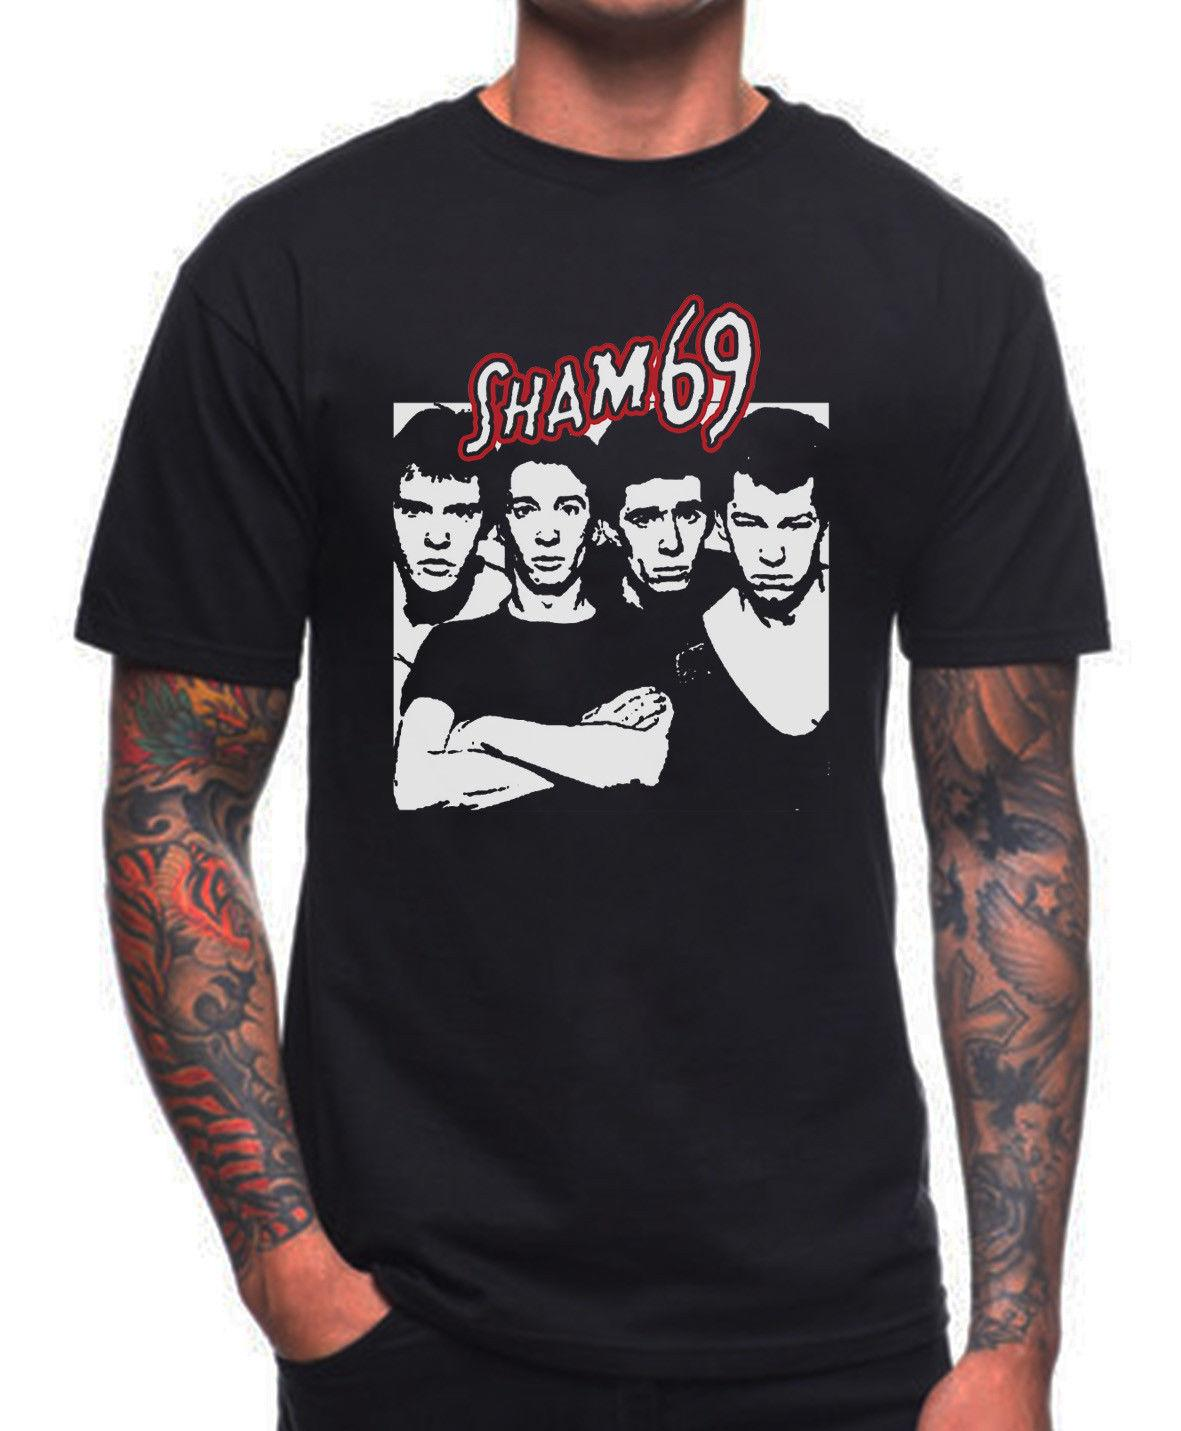 SHAM 69 T SHIRT ENGLISH PUNK ROCK Print T-Shirts Original Sleeve Shirts Fashion Top Tee